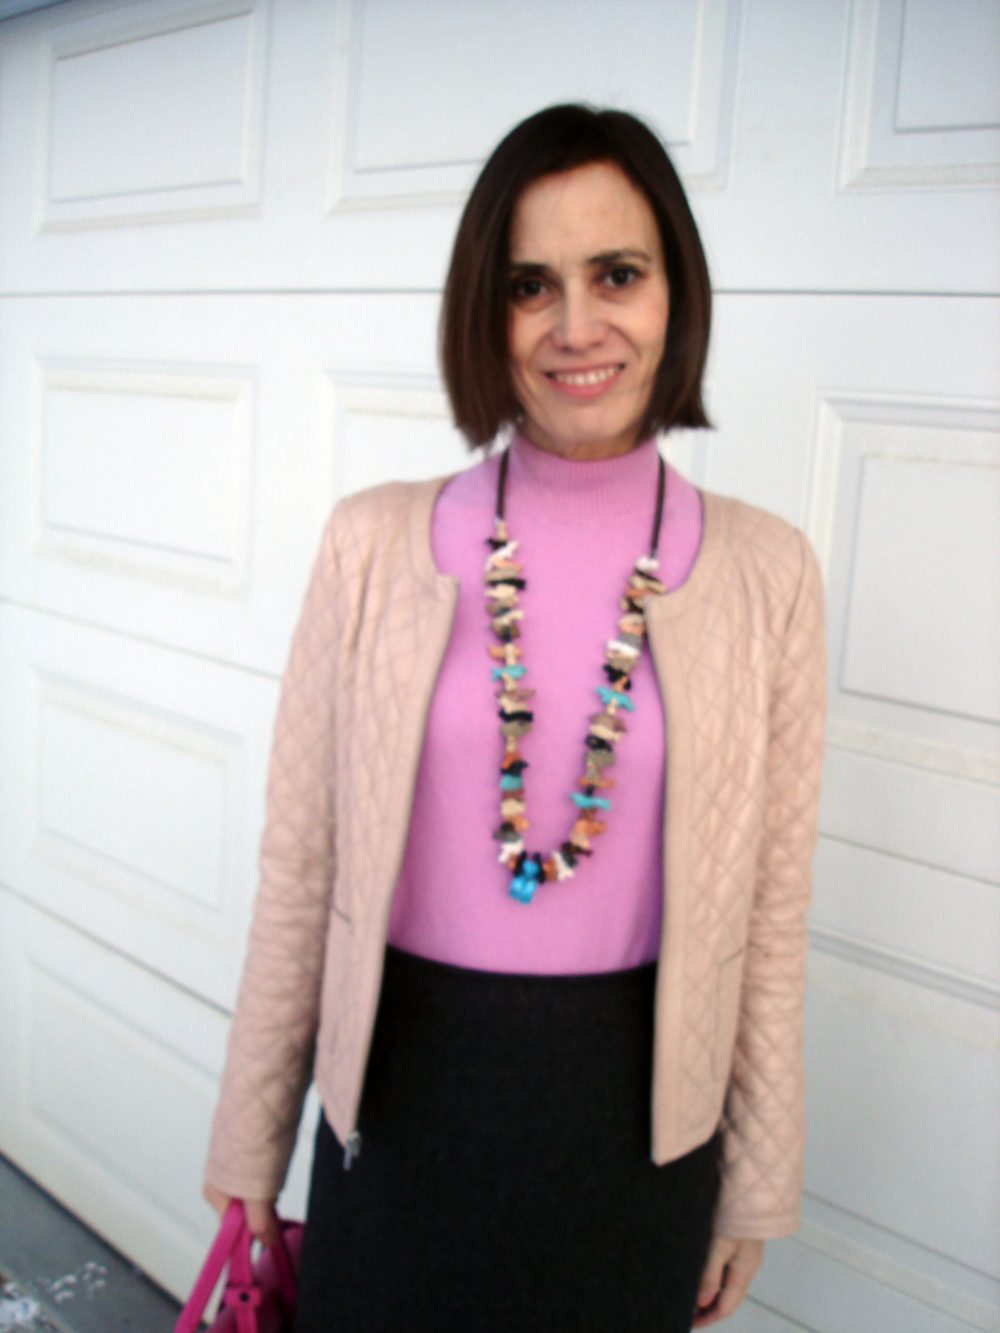 style influencer in pink sweater and blush jacket, gray skirt